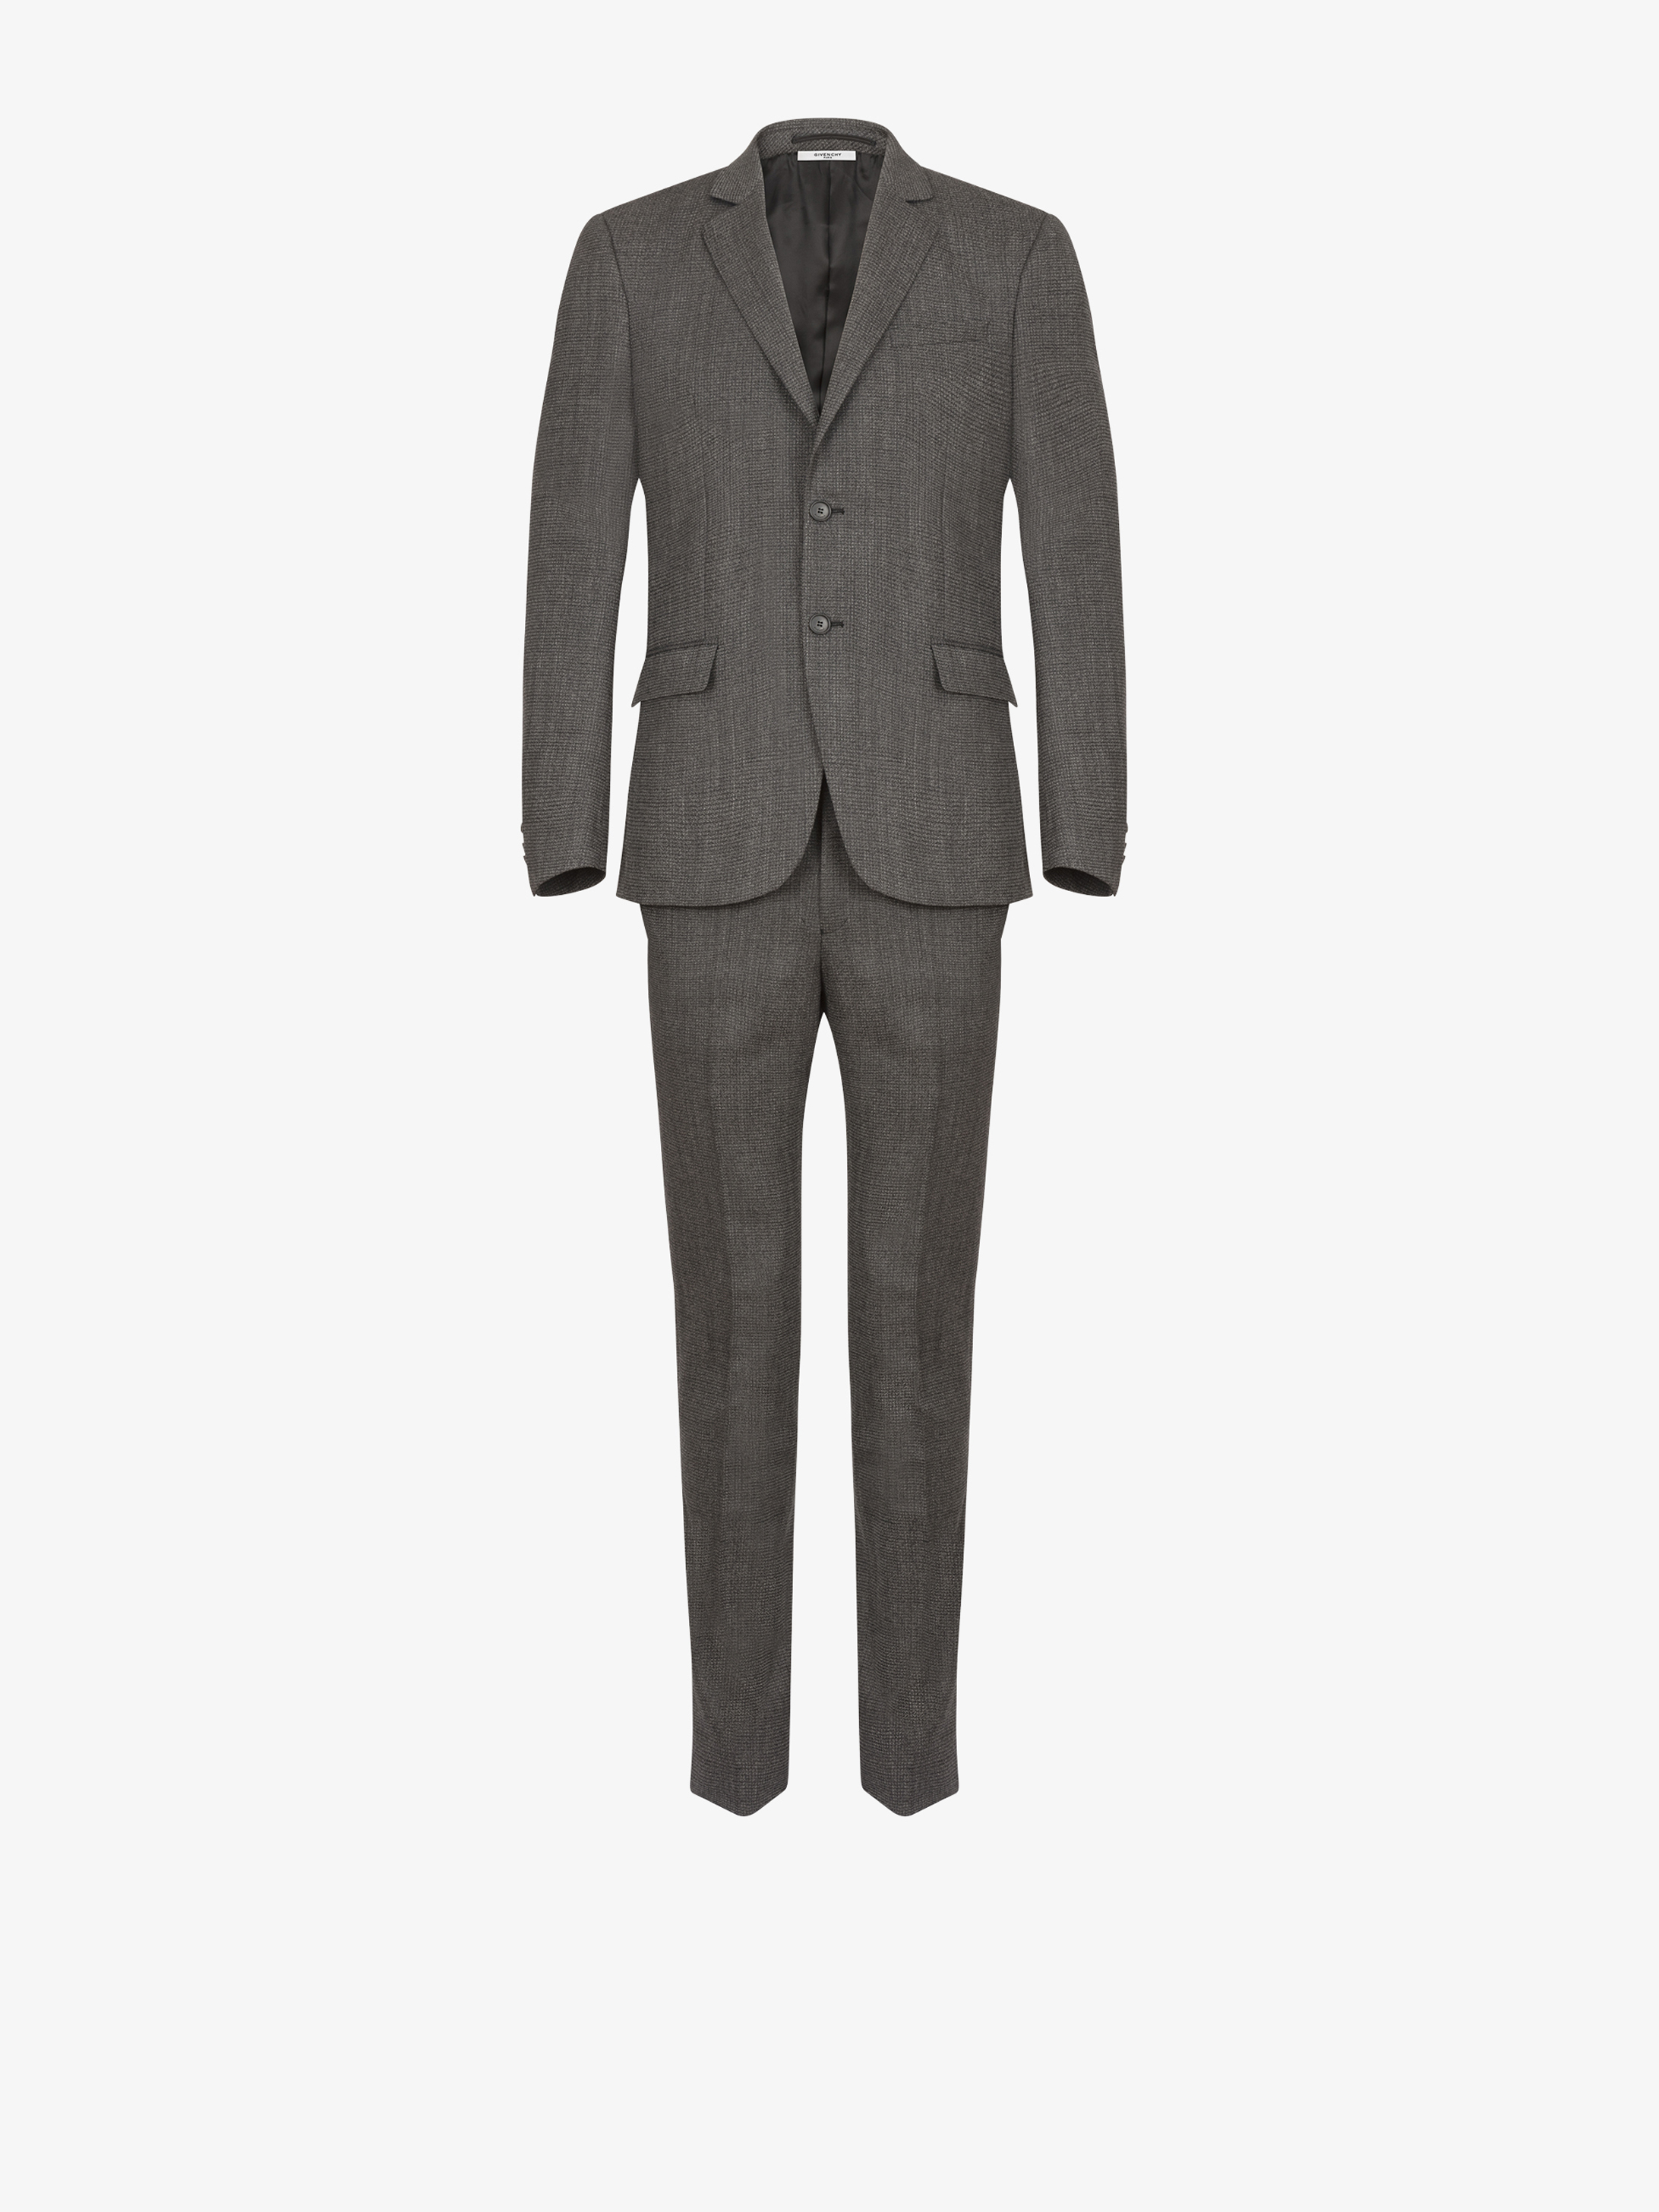 a25f8db4e3 Givenchy Slim fit suit in technical wool | GIVENCHY Paris